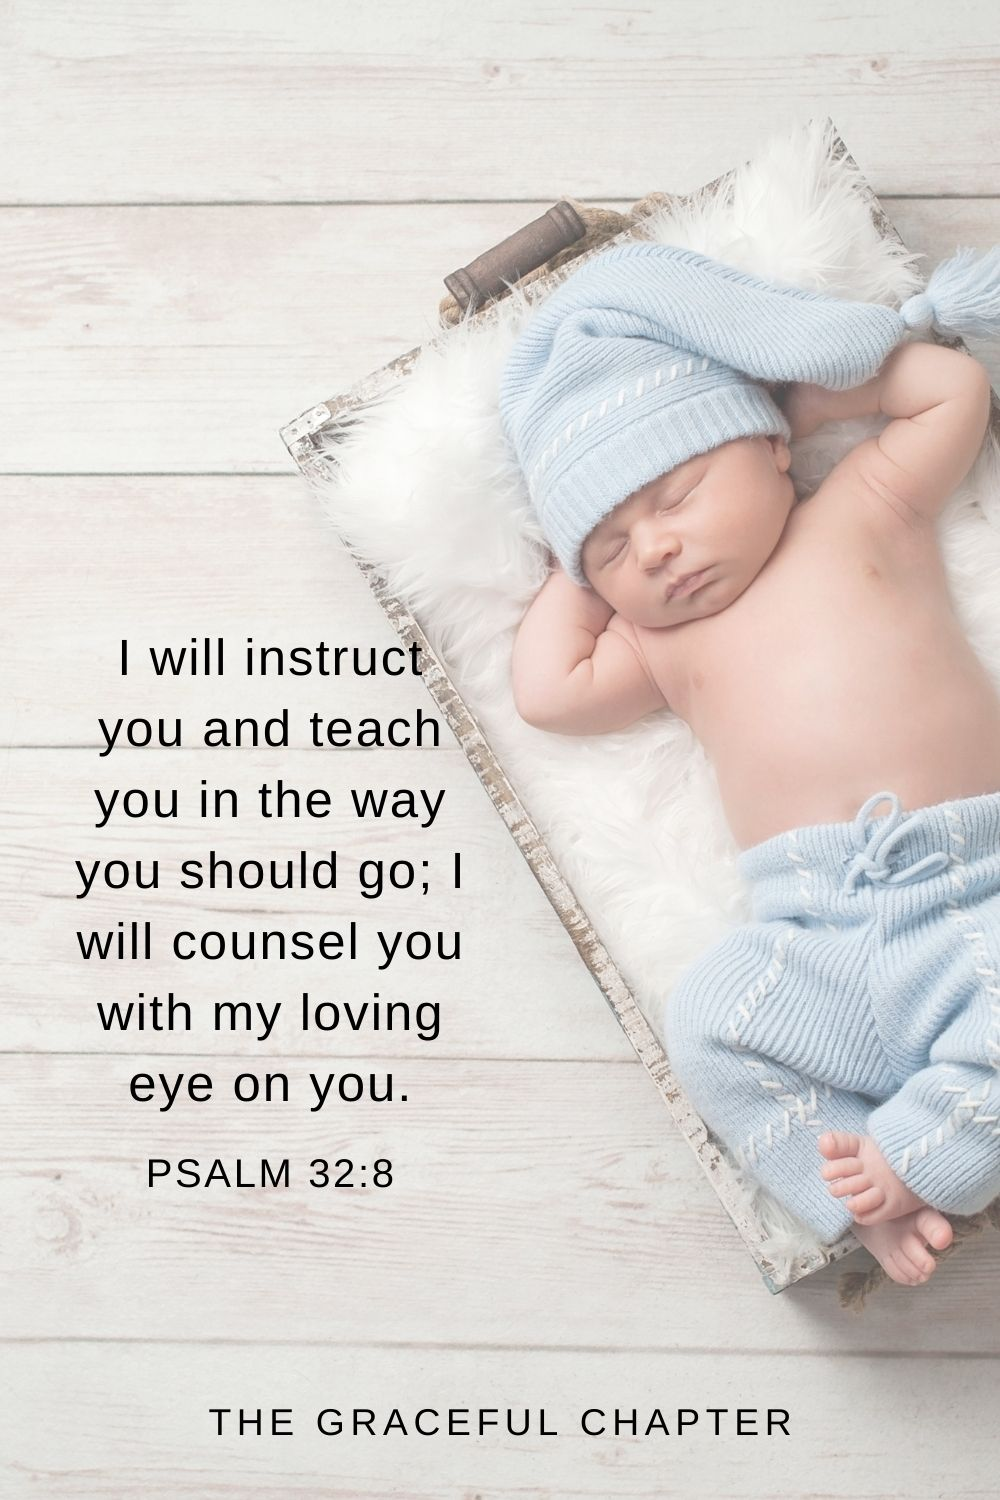 I will instruct you and teach you in the way you should go; I will counsel you with my loving eye on you. Psalm 32:8